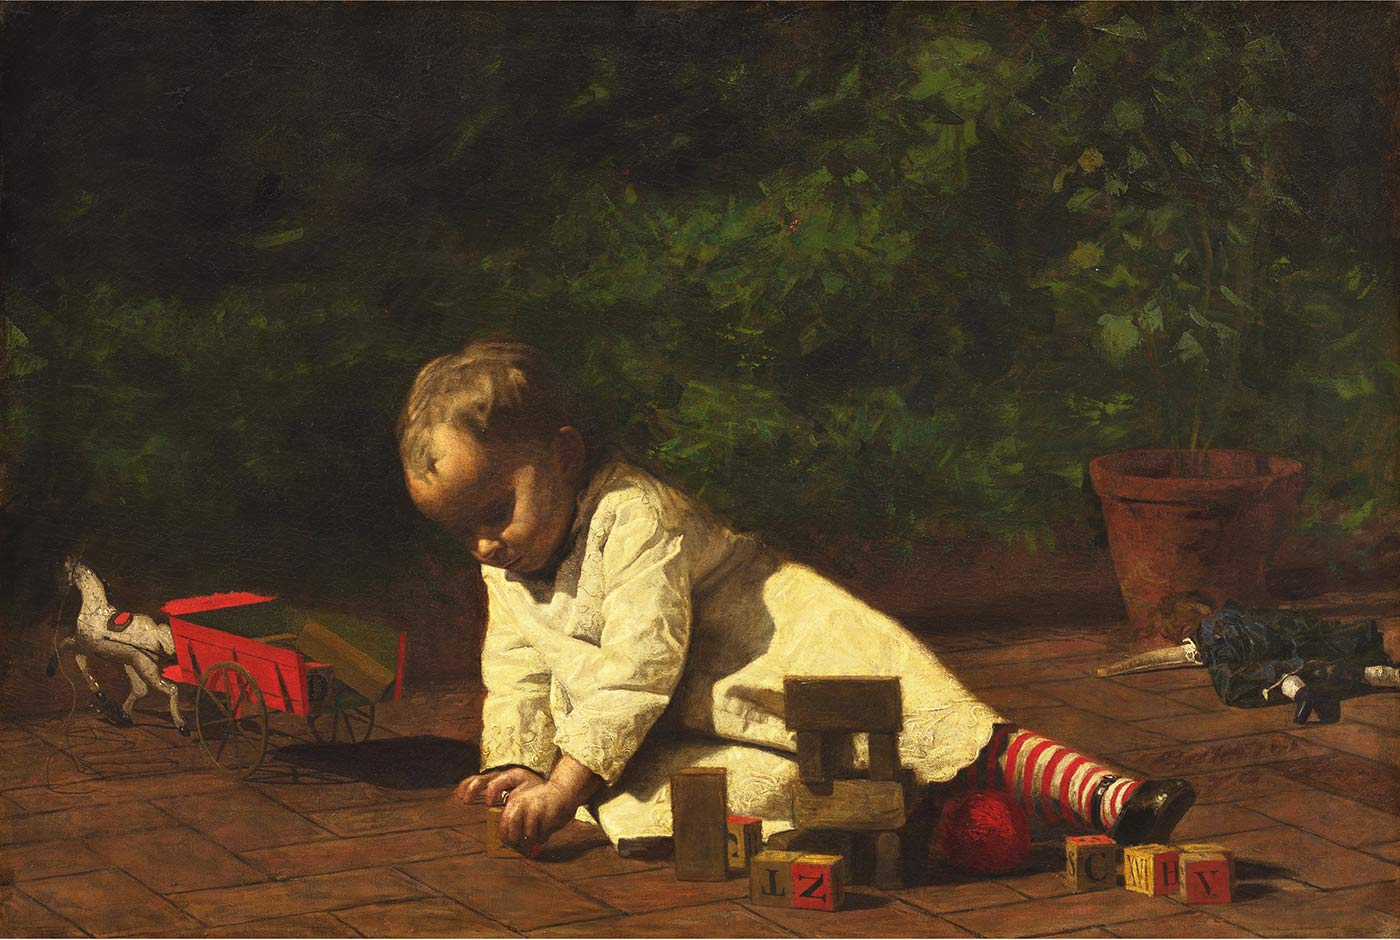 """""""Baby at Play"""" by Thomas Eakins, 1876"""